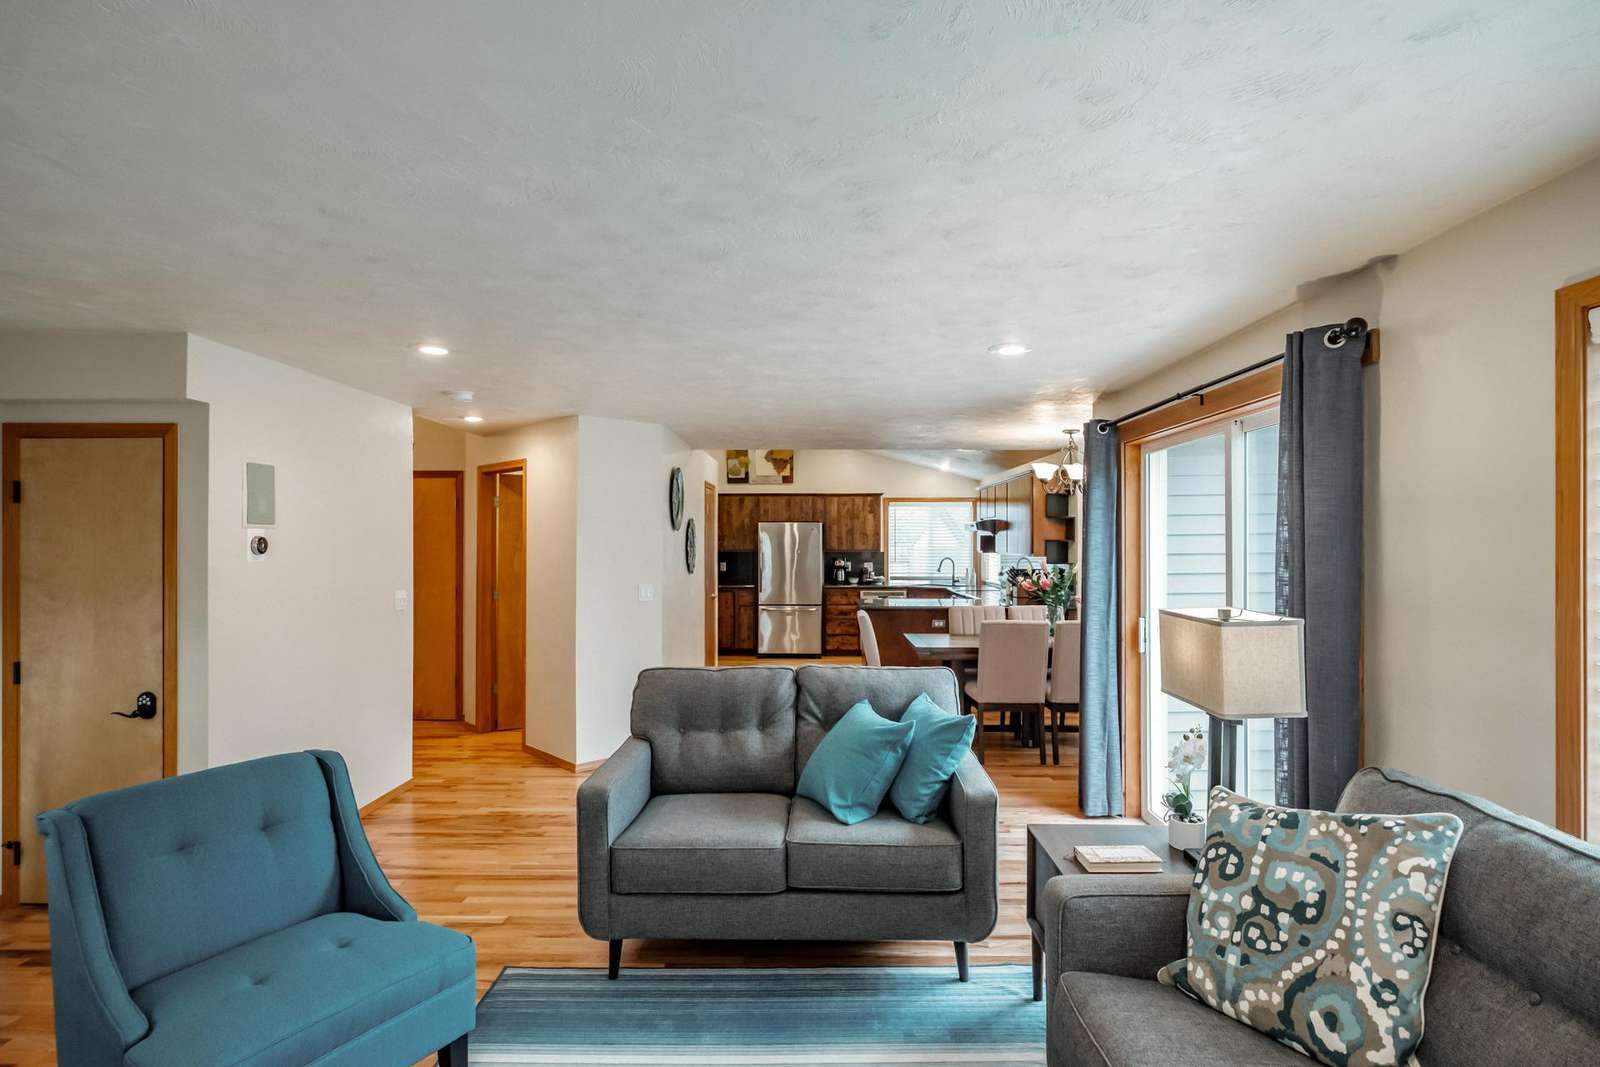 Comfortable seating in a great-room setting